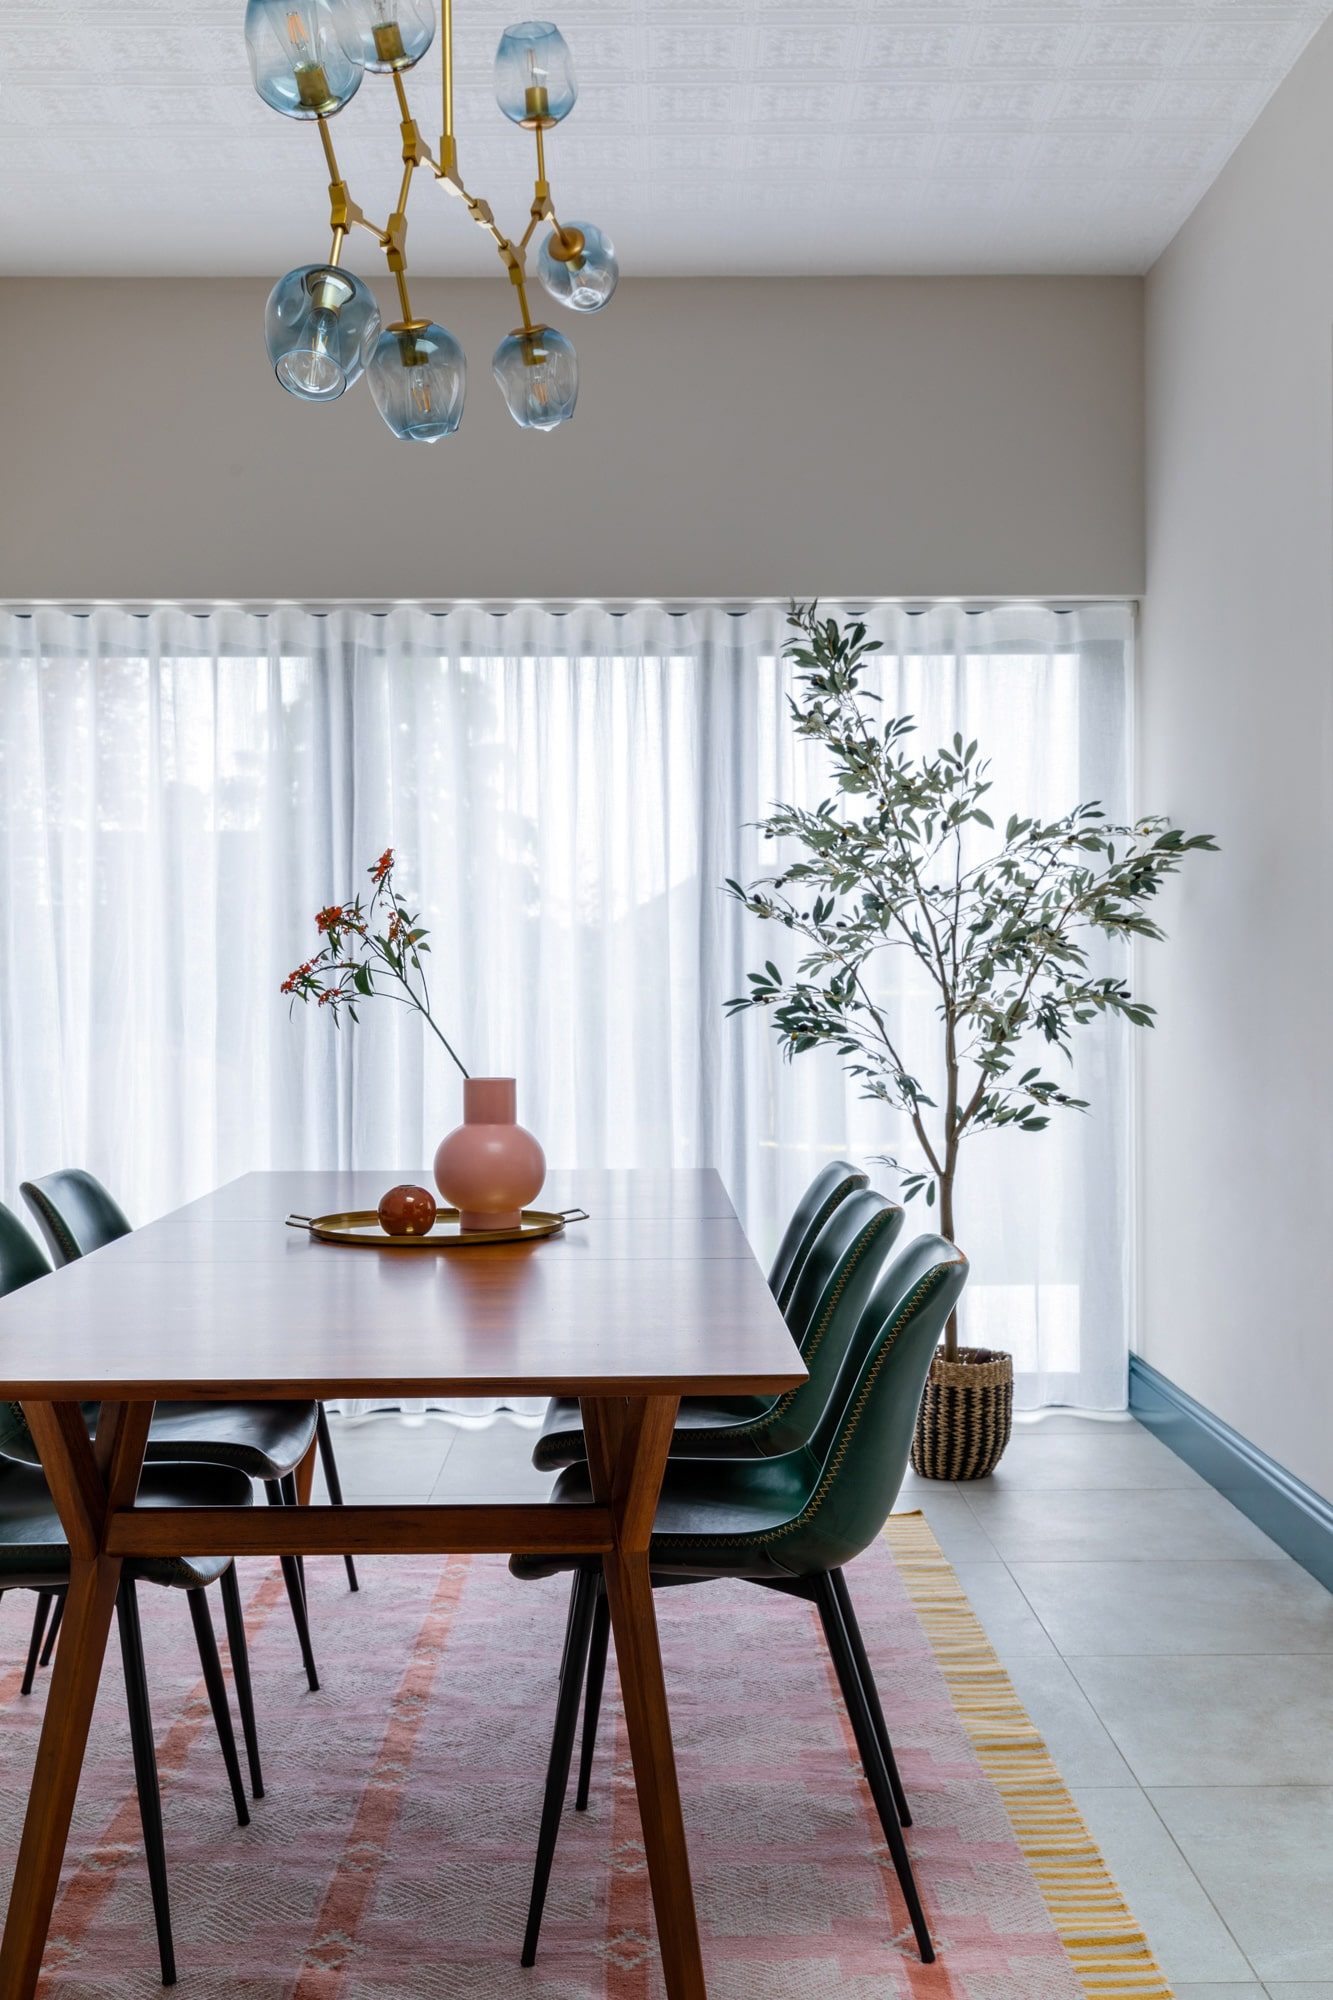 Interior photograph: a wooden dinning table in front of the window, three green chairs, a round tray with pink vase on the tray. A beautiful poster on the wall with a female hand pointing on a fried egg on a plate in a blue paint frame.